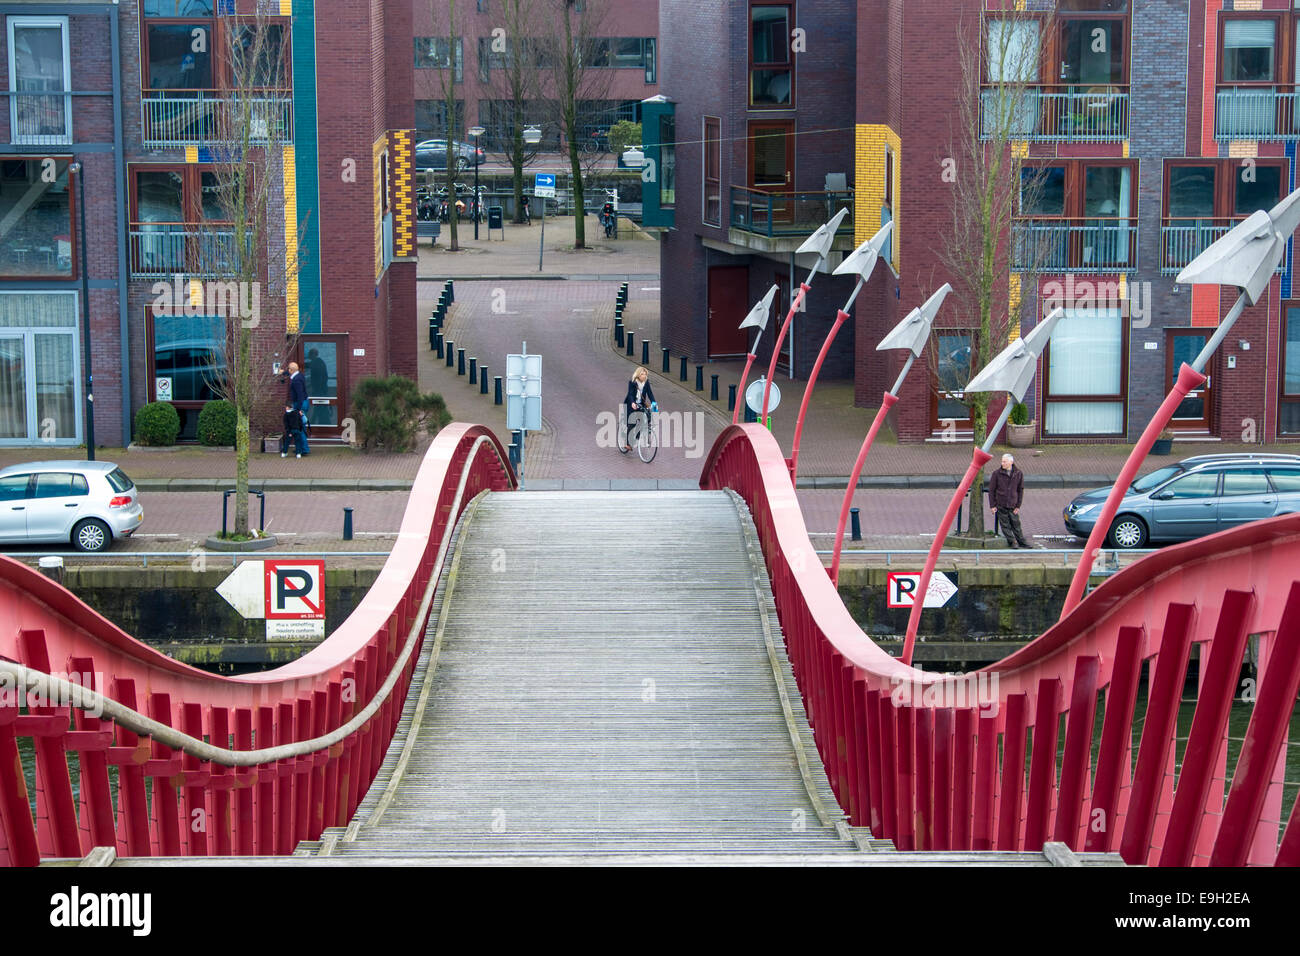 Red bridge between Borneo Eiland and Sporenburg Eiland, Eastern Docklands, Amsterdam, province of North Holland, - Stock Image